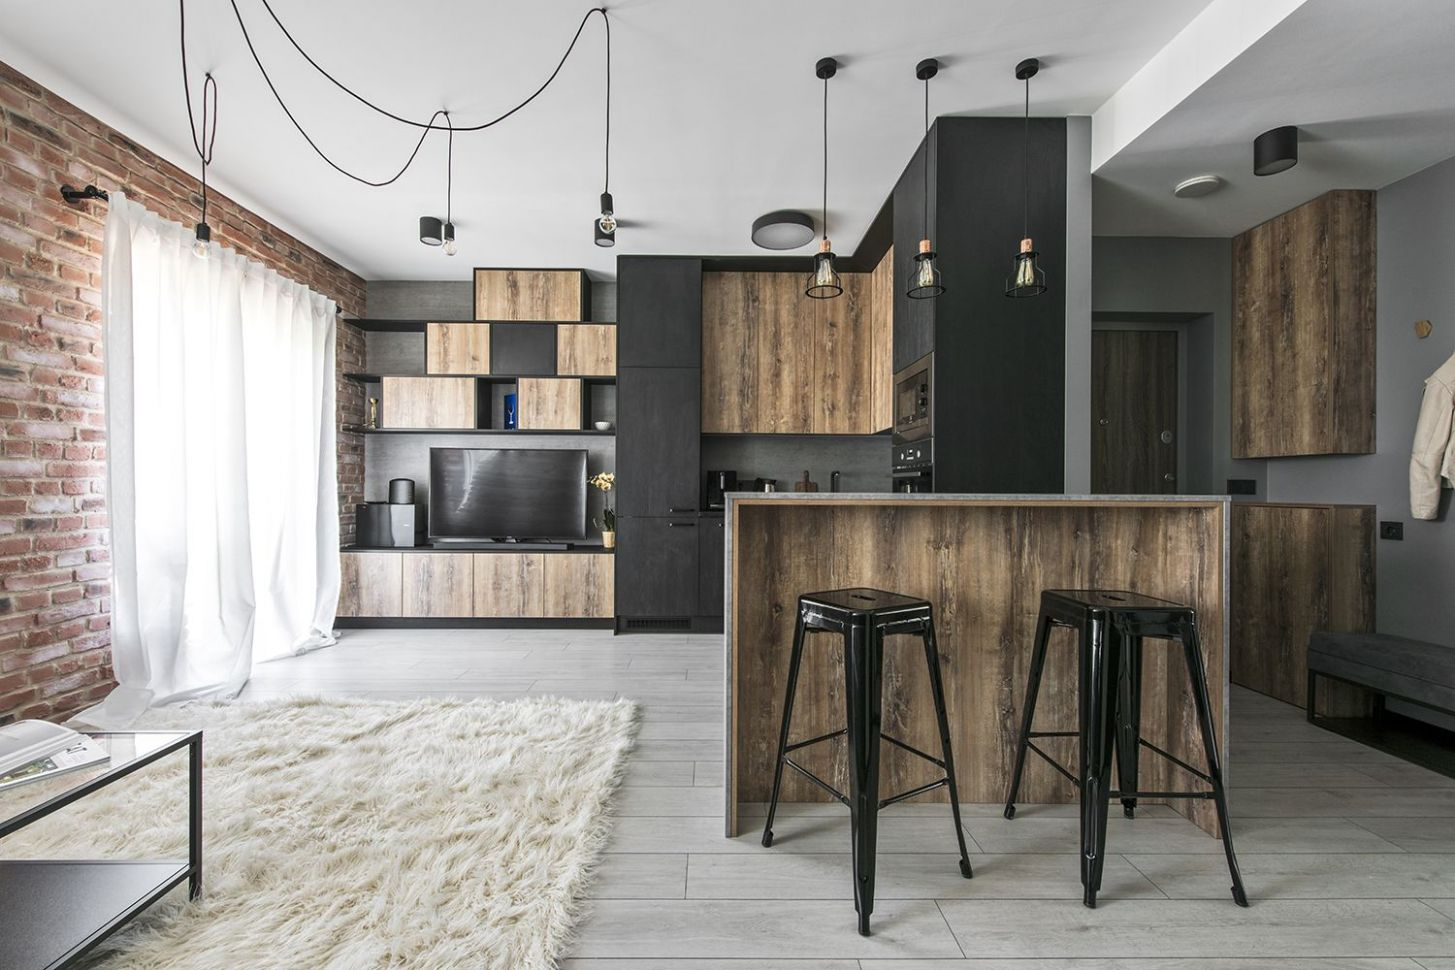 Small industrial apartment in Lithuania gets an inspiring update ...